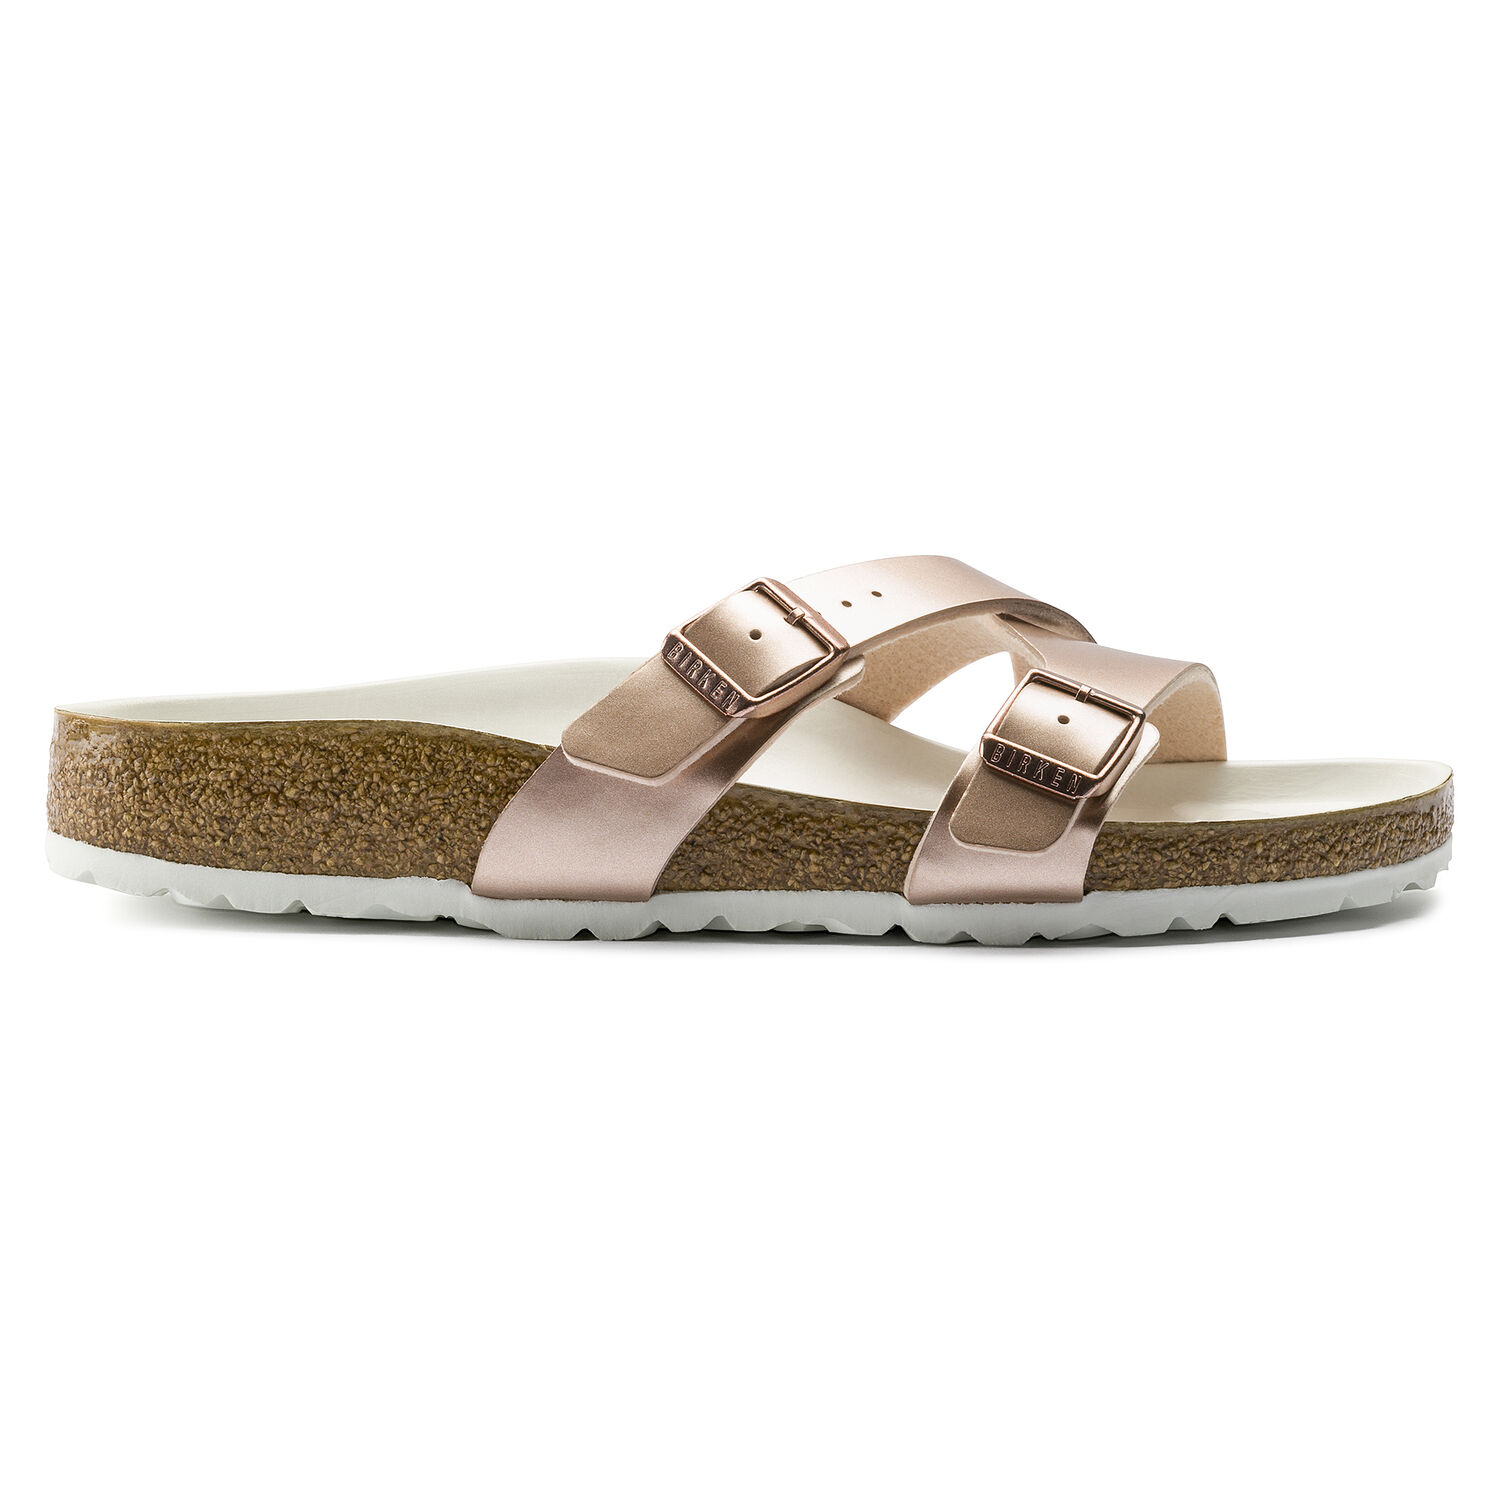 Yao Soft Footbed Oil Leather Sandal (Buy 2 Get 10% OFF & Free Shipping)